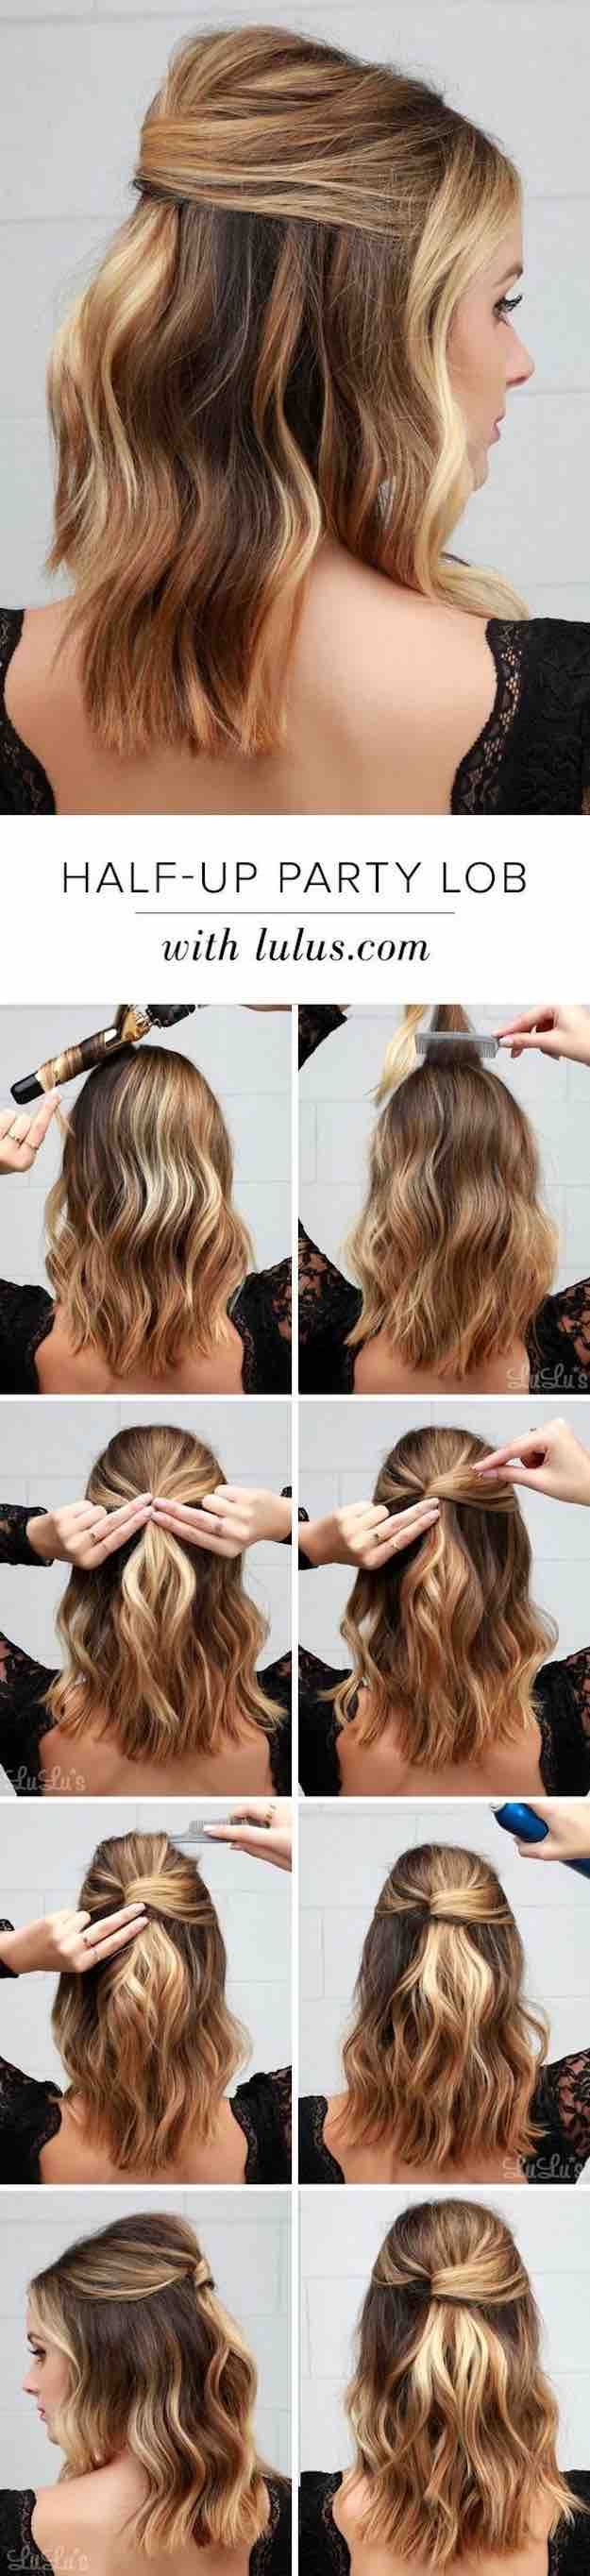 41 Lob Haircut Concepts for Ladies